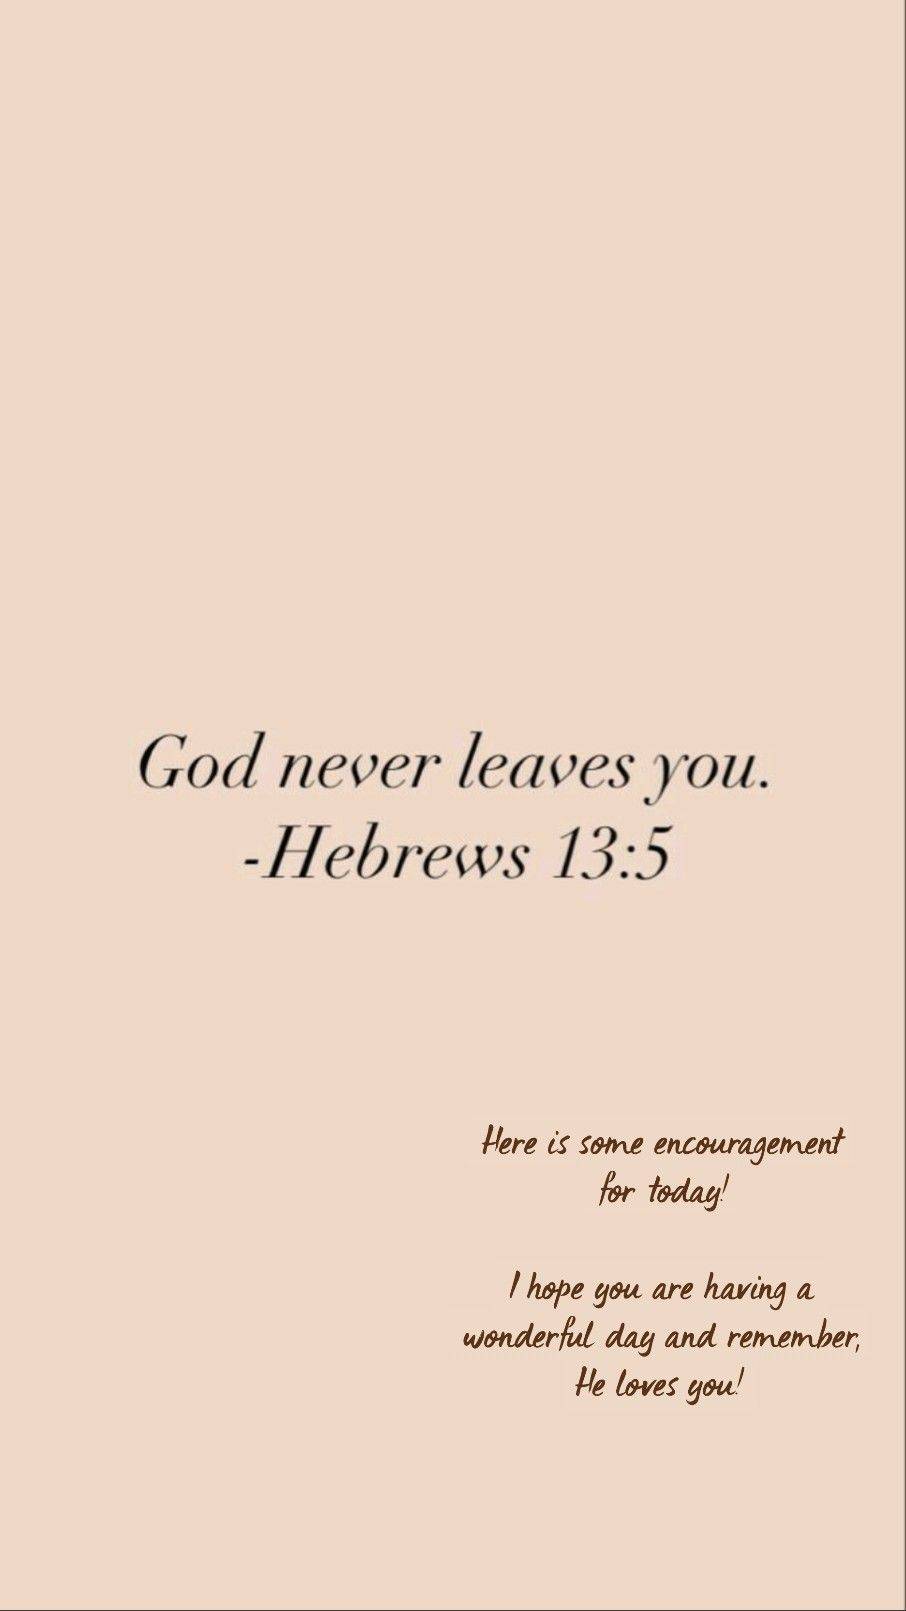 Here is some encouragement for today!  I hope you are having a wonderful day and remember, He loves you!